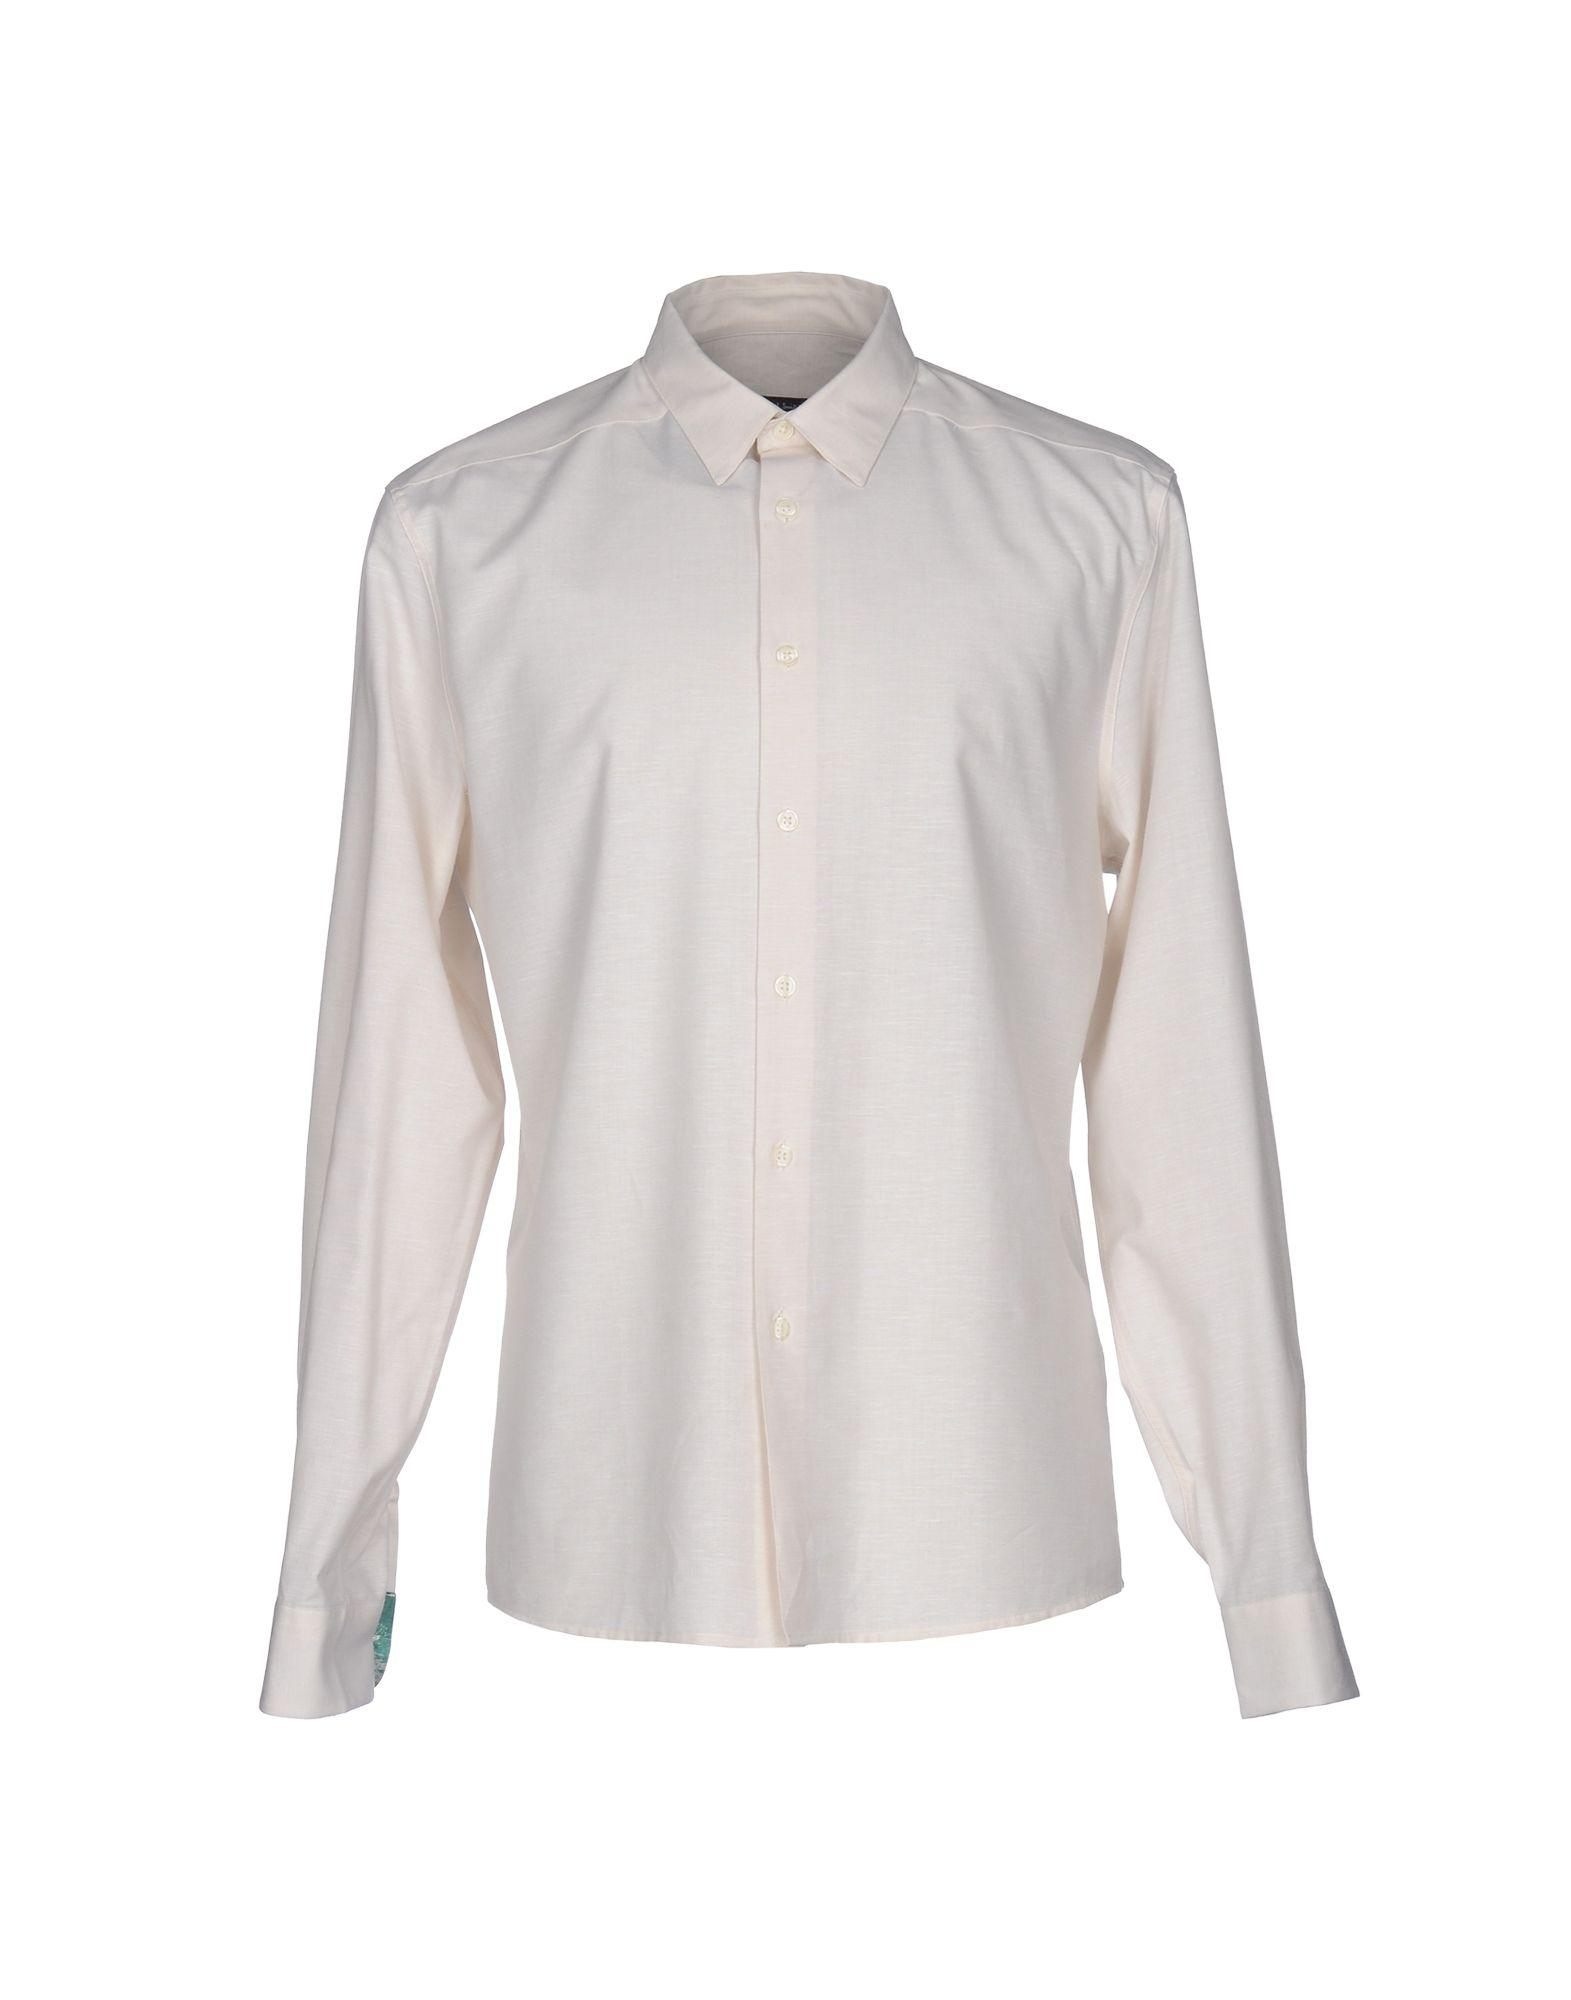 Lyst Ps By Paul Smith Shirt In Natural For Men